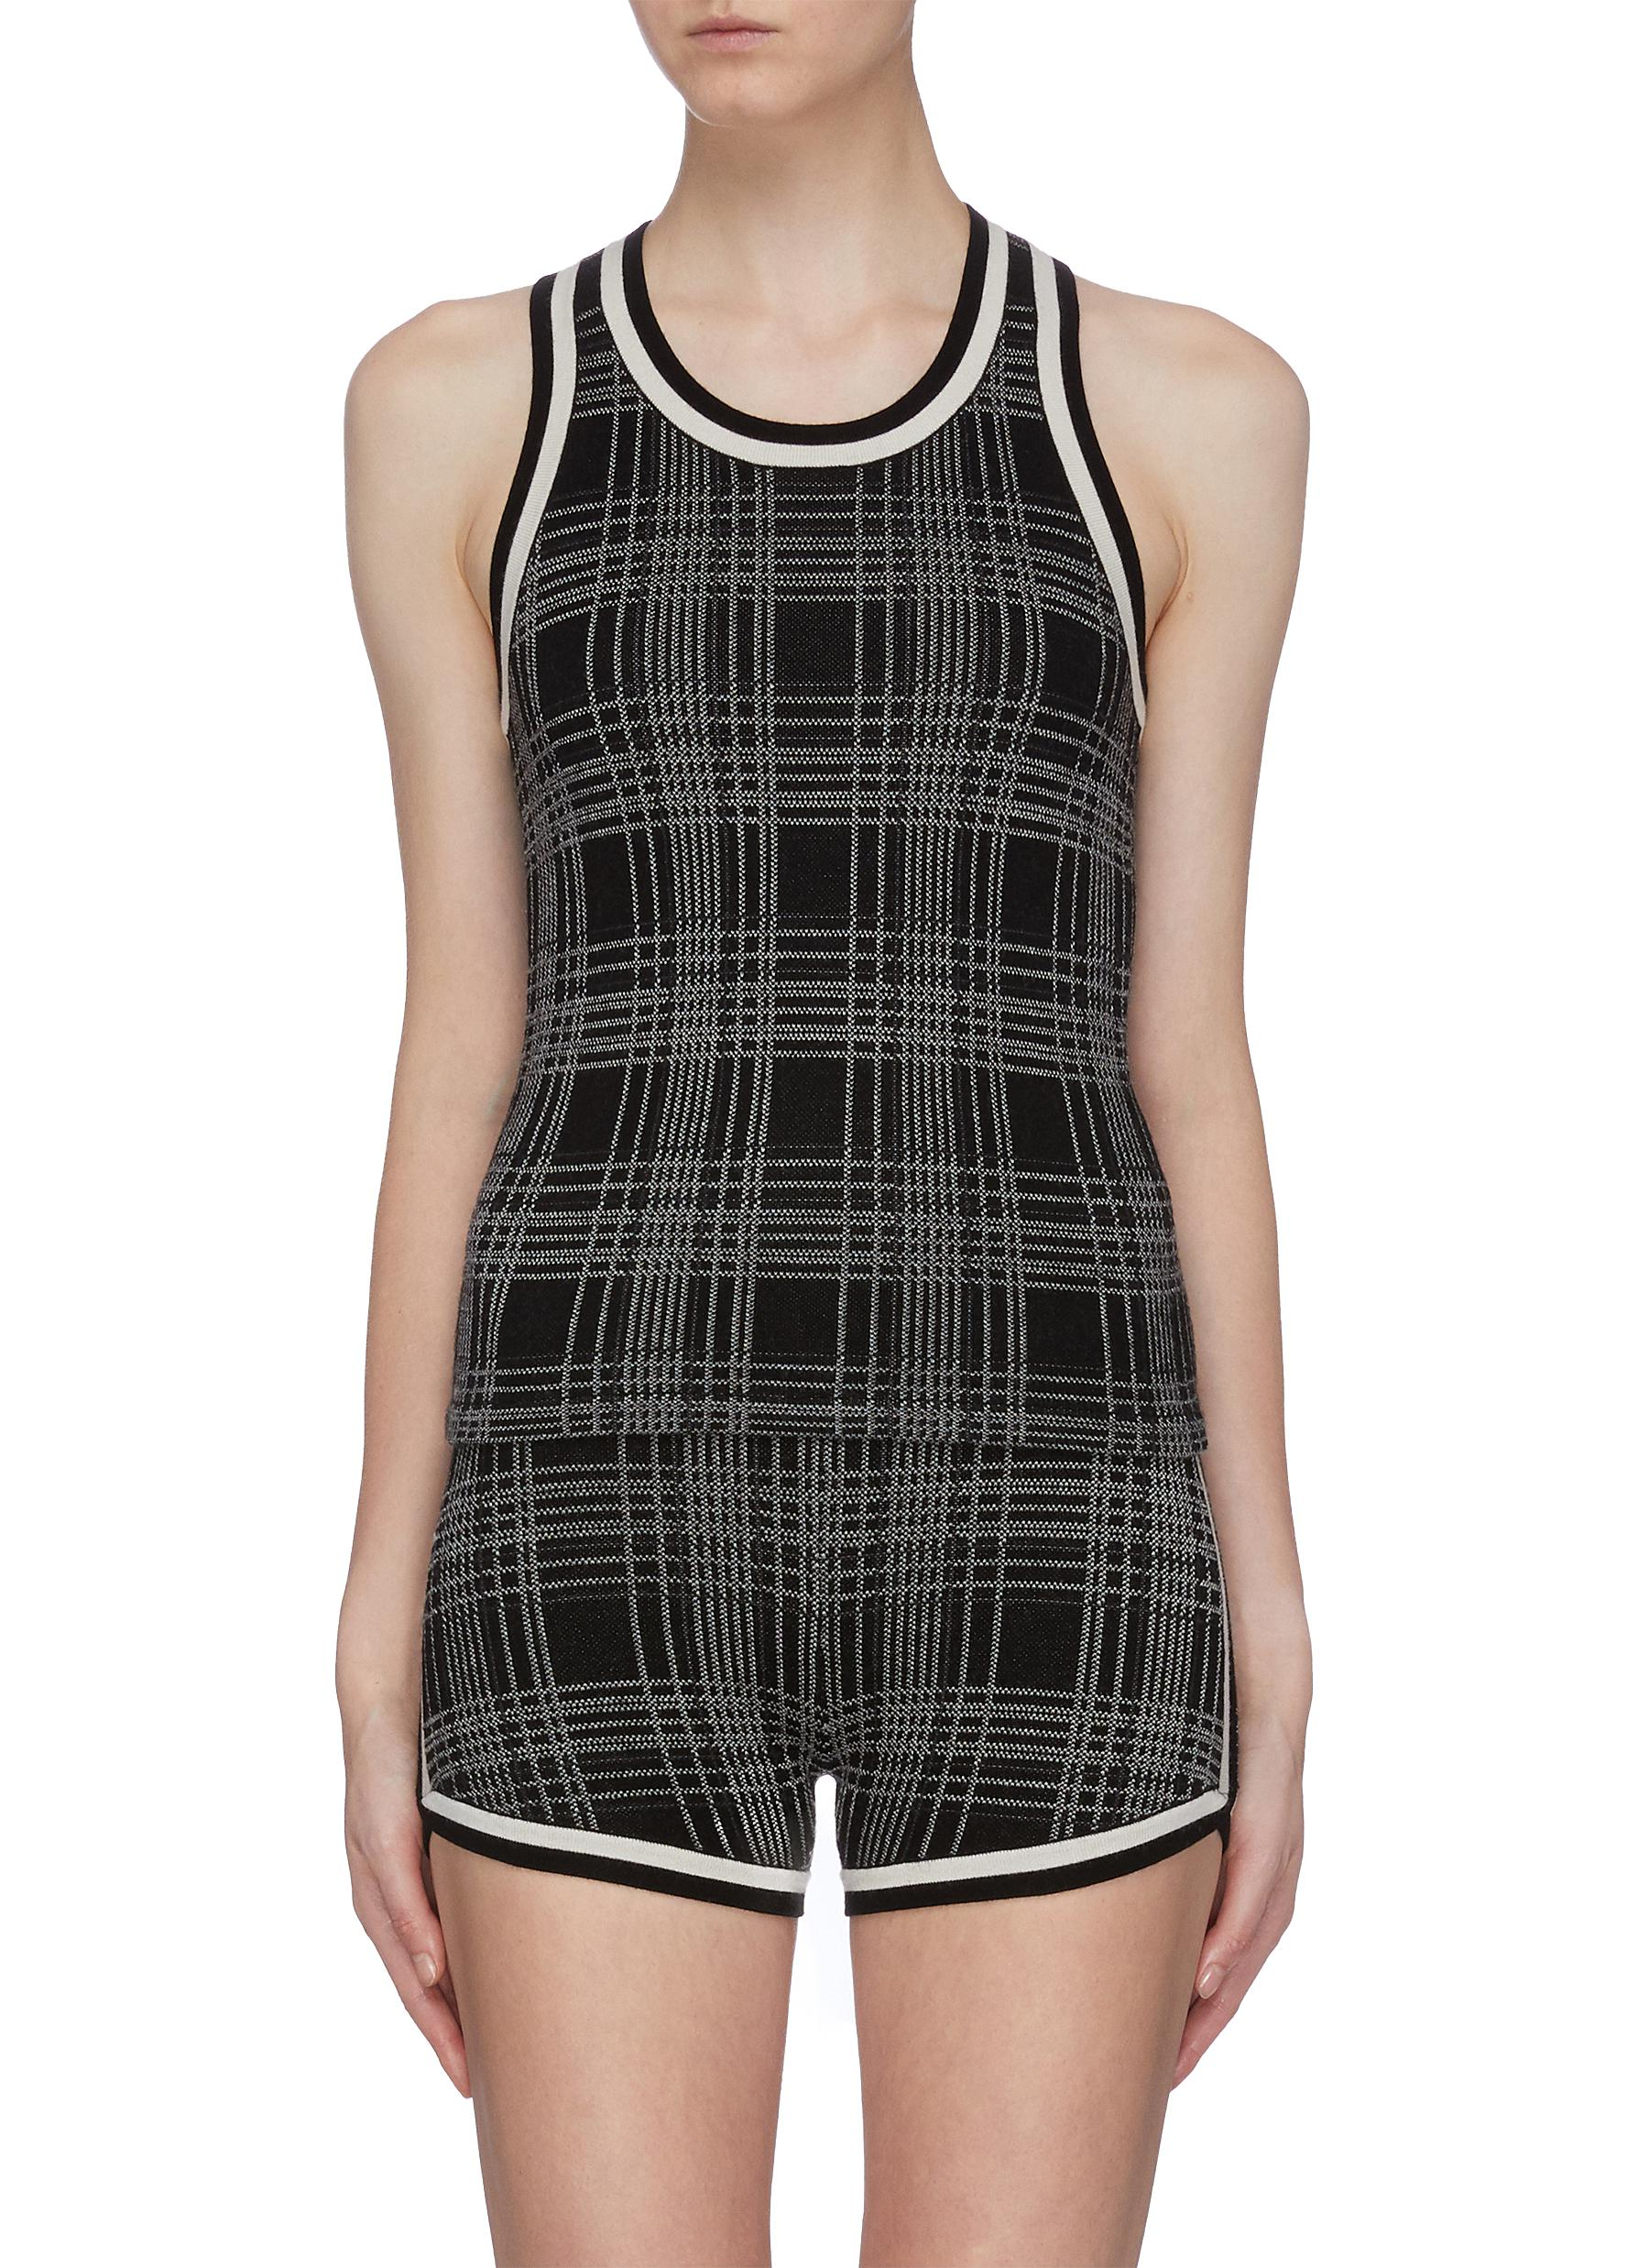 Stripe trim check plaid knit racerback tank top by Nagnata